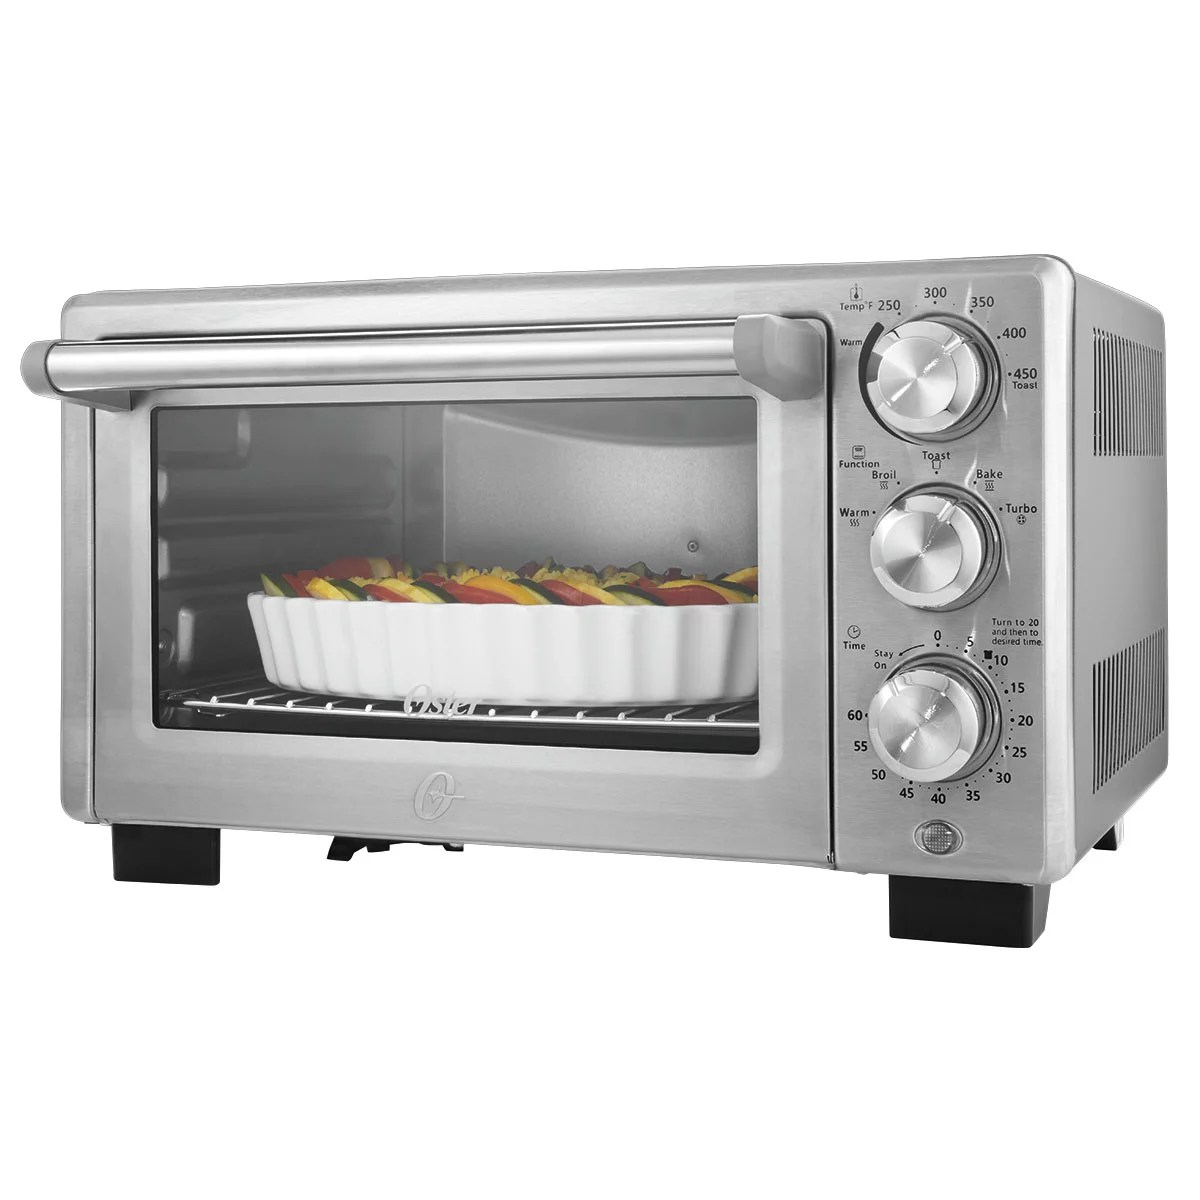 Oster Convection Countertop Oven Reviews Oster Designed For Life Convection Toaster Oven Tssttvdfl2